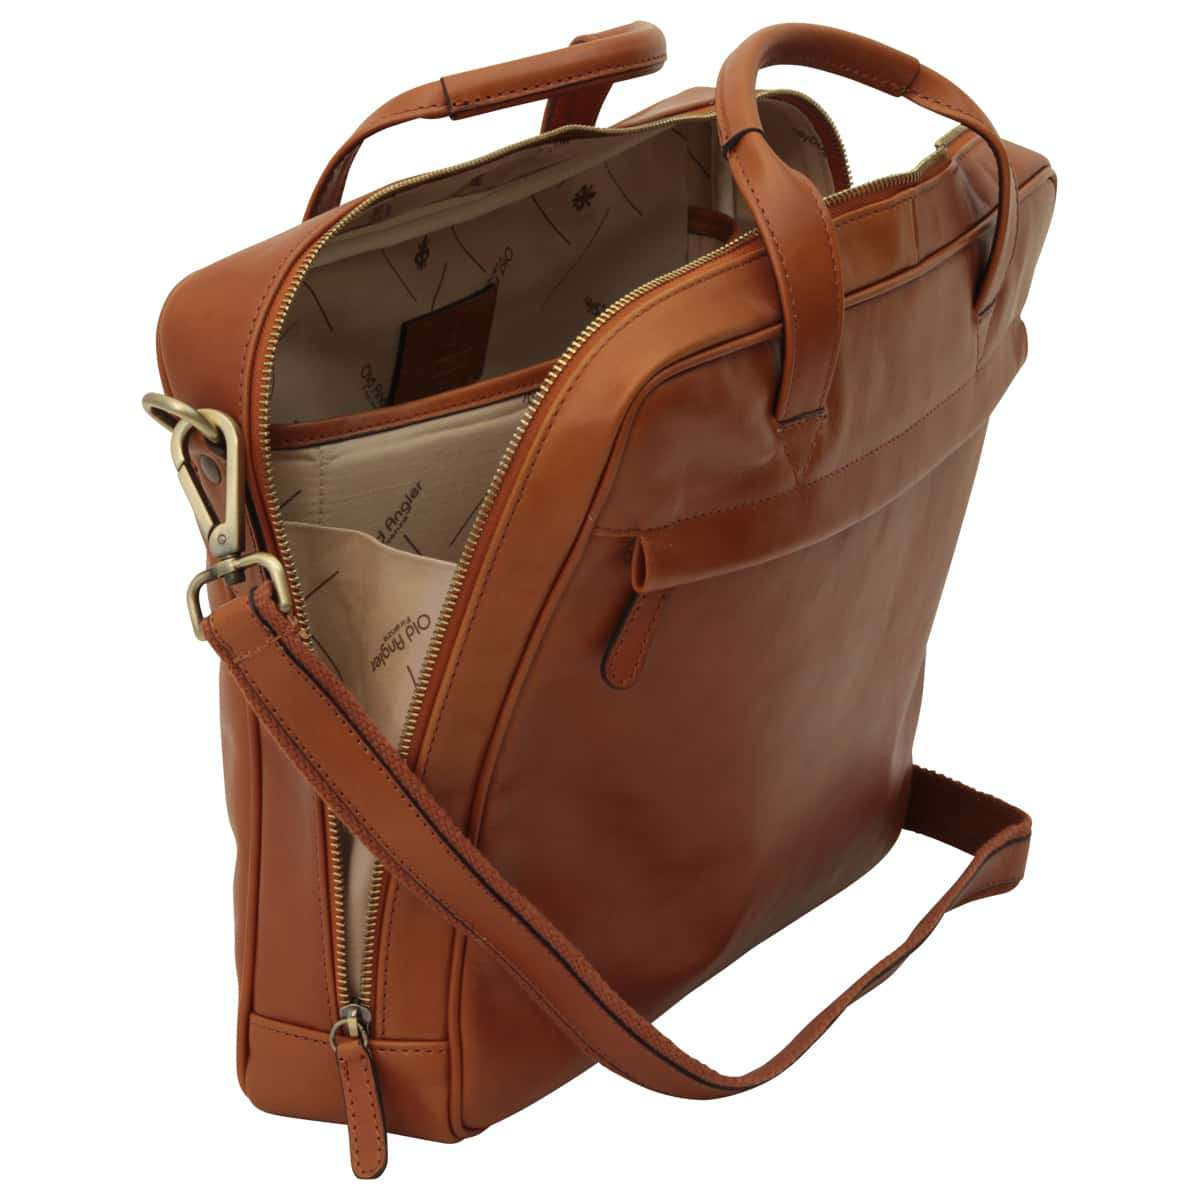 Leather Briefcase with zip closure - Brown Colonial | 409489CO UK | Old Angler Firenze